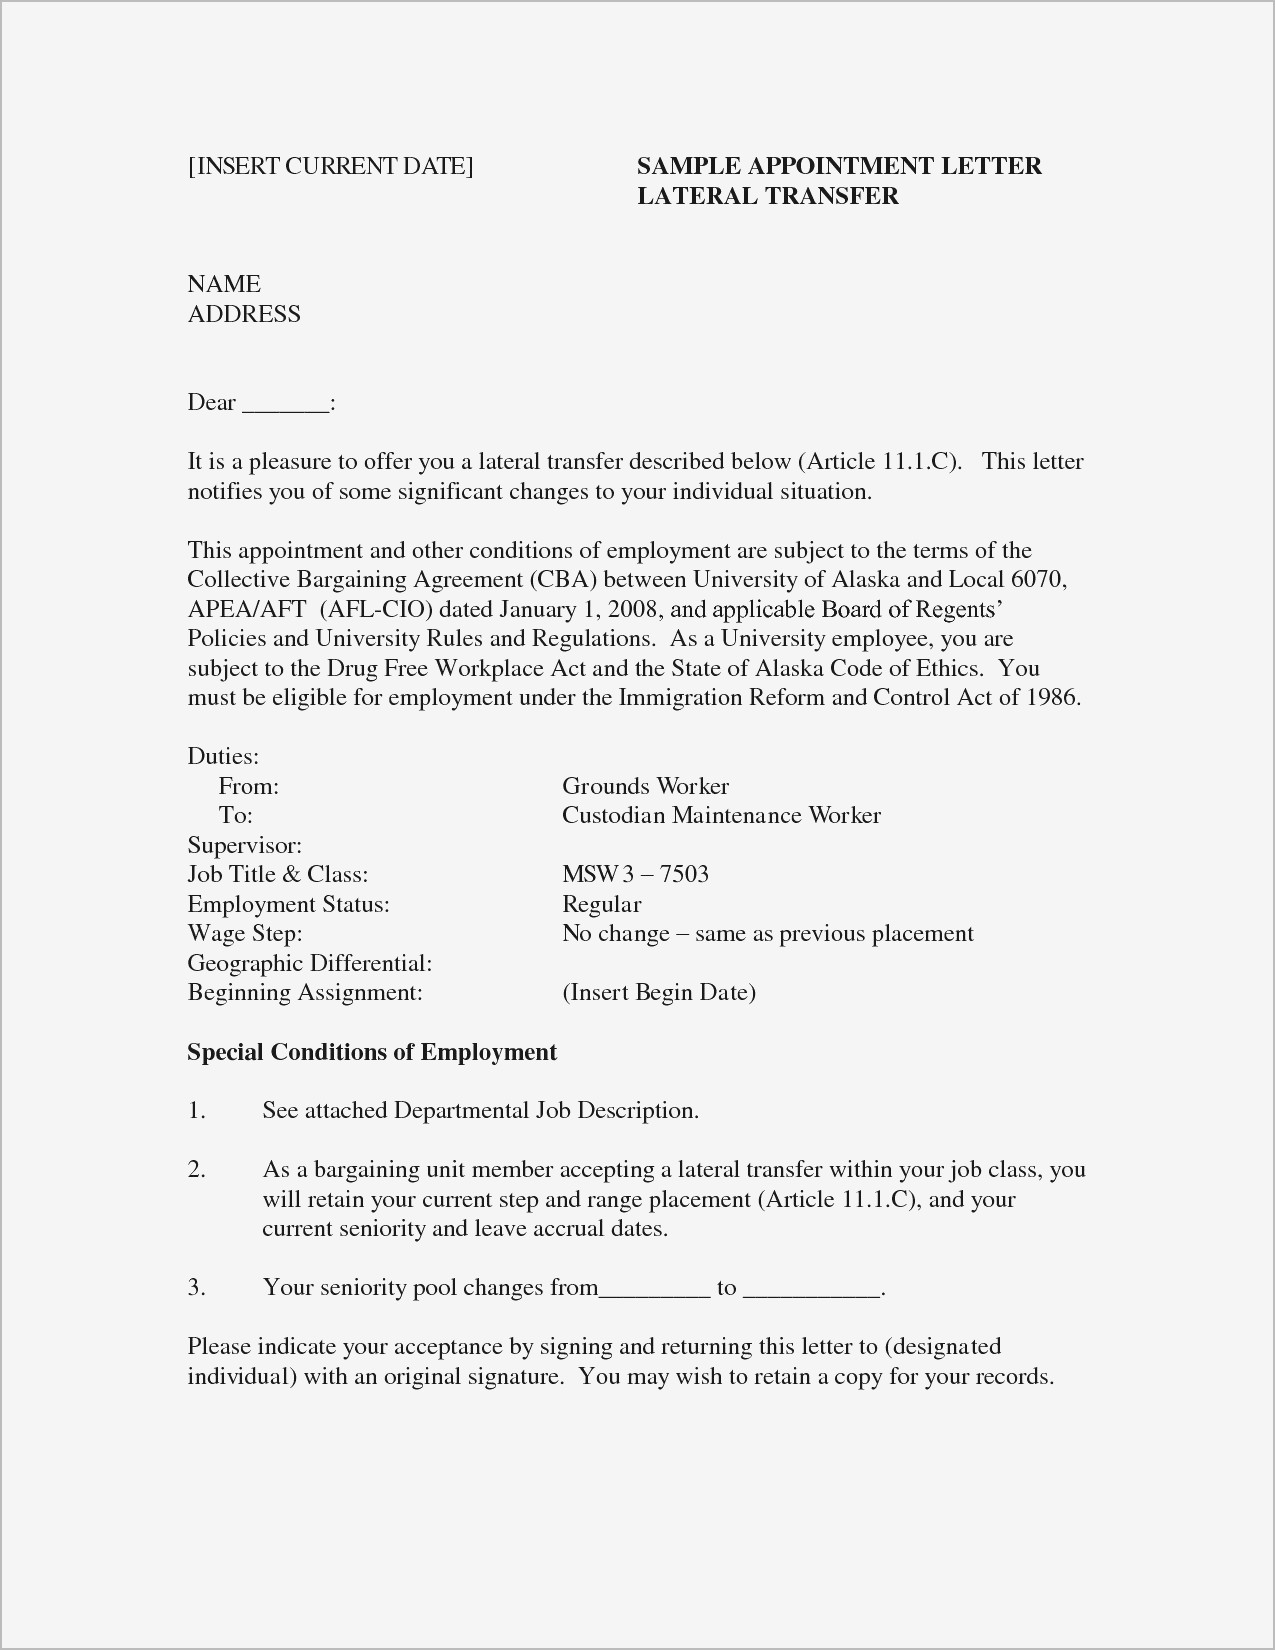 Will Serve Letter Template - Customer Service Resume Cover Letter Samples